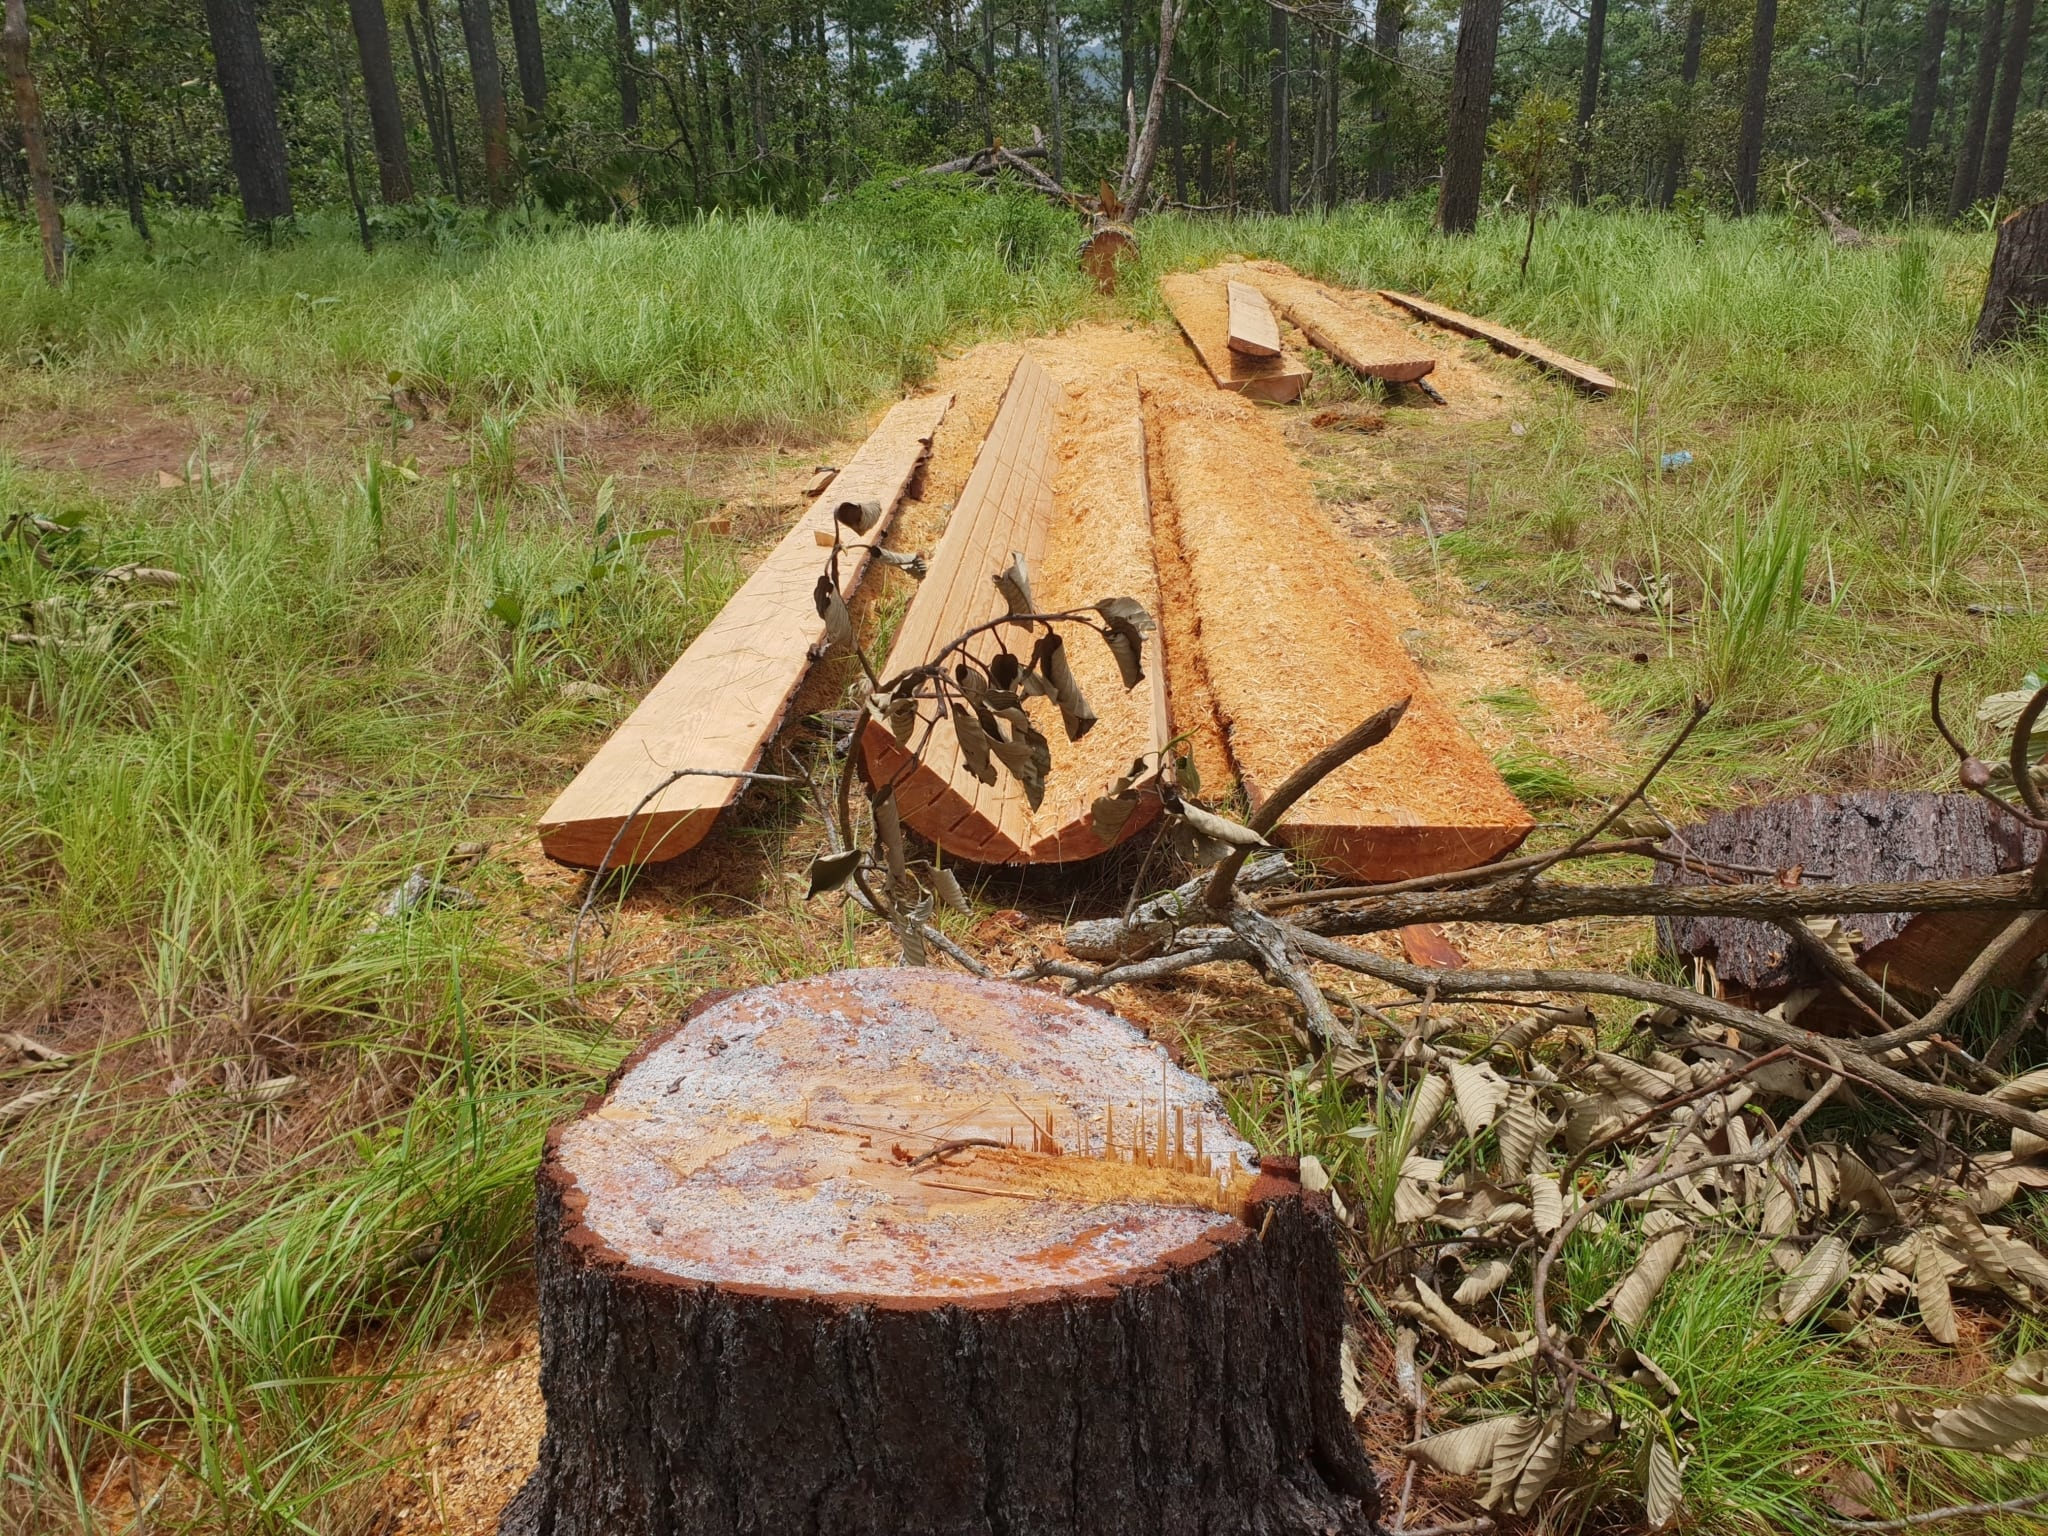 More than 600 chainsaws confiscated in 2017 – Dr. Tom Gray